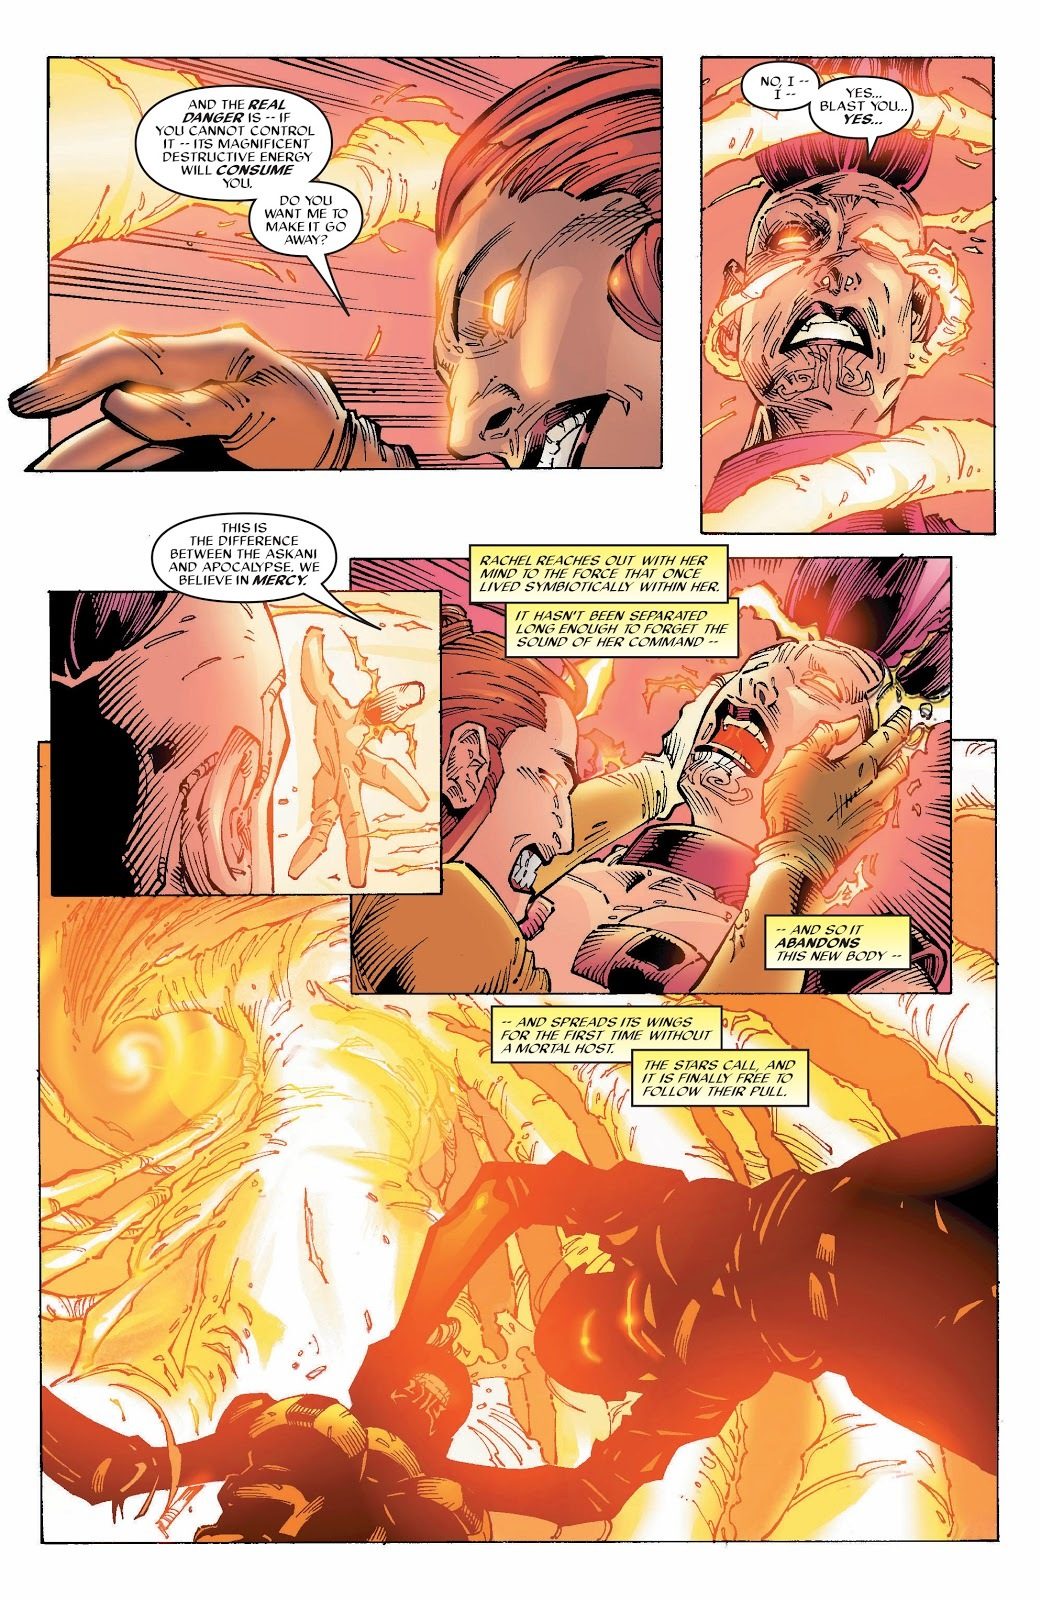 While fighting Nero (Apocalypse's second in command and power stealing vampire) Rachel has a vision of the future and sends all of the Phoenix Force into Nero and overloads her before Rachel saves her by setting the Phoenix Force free.